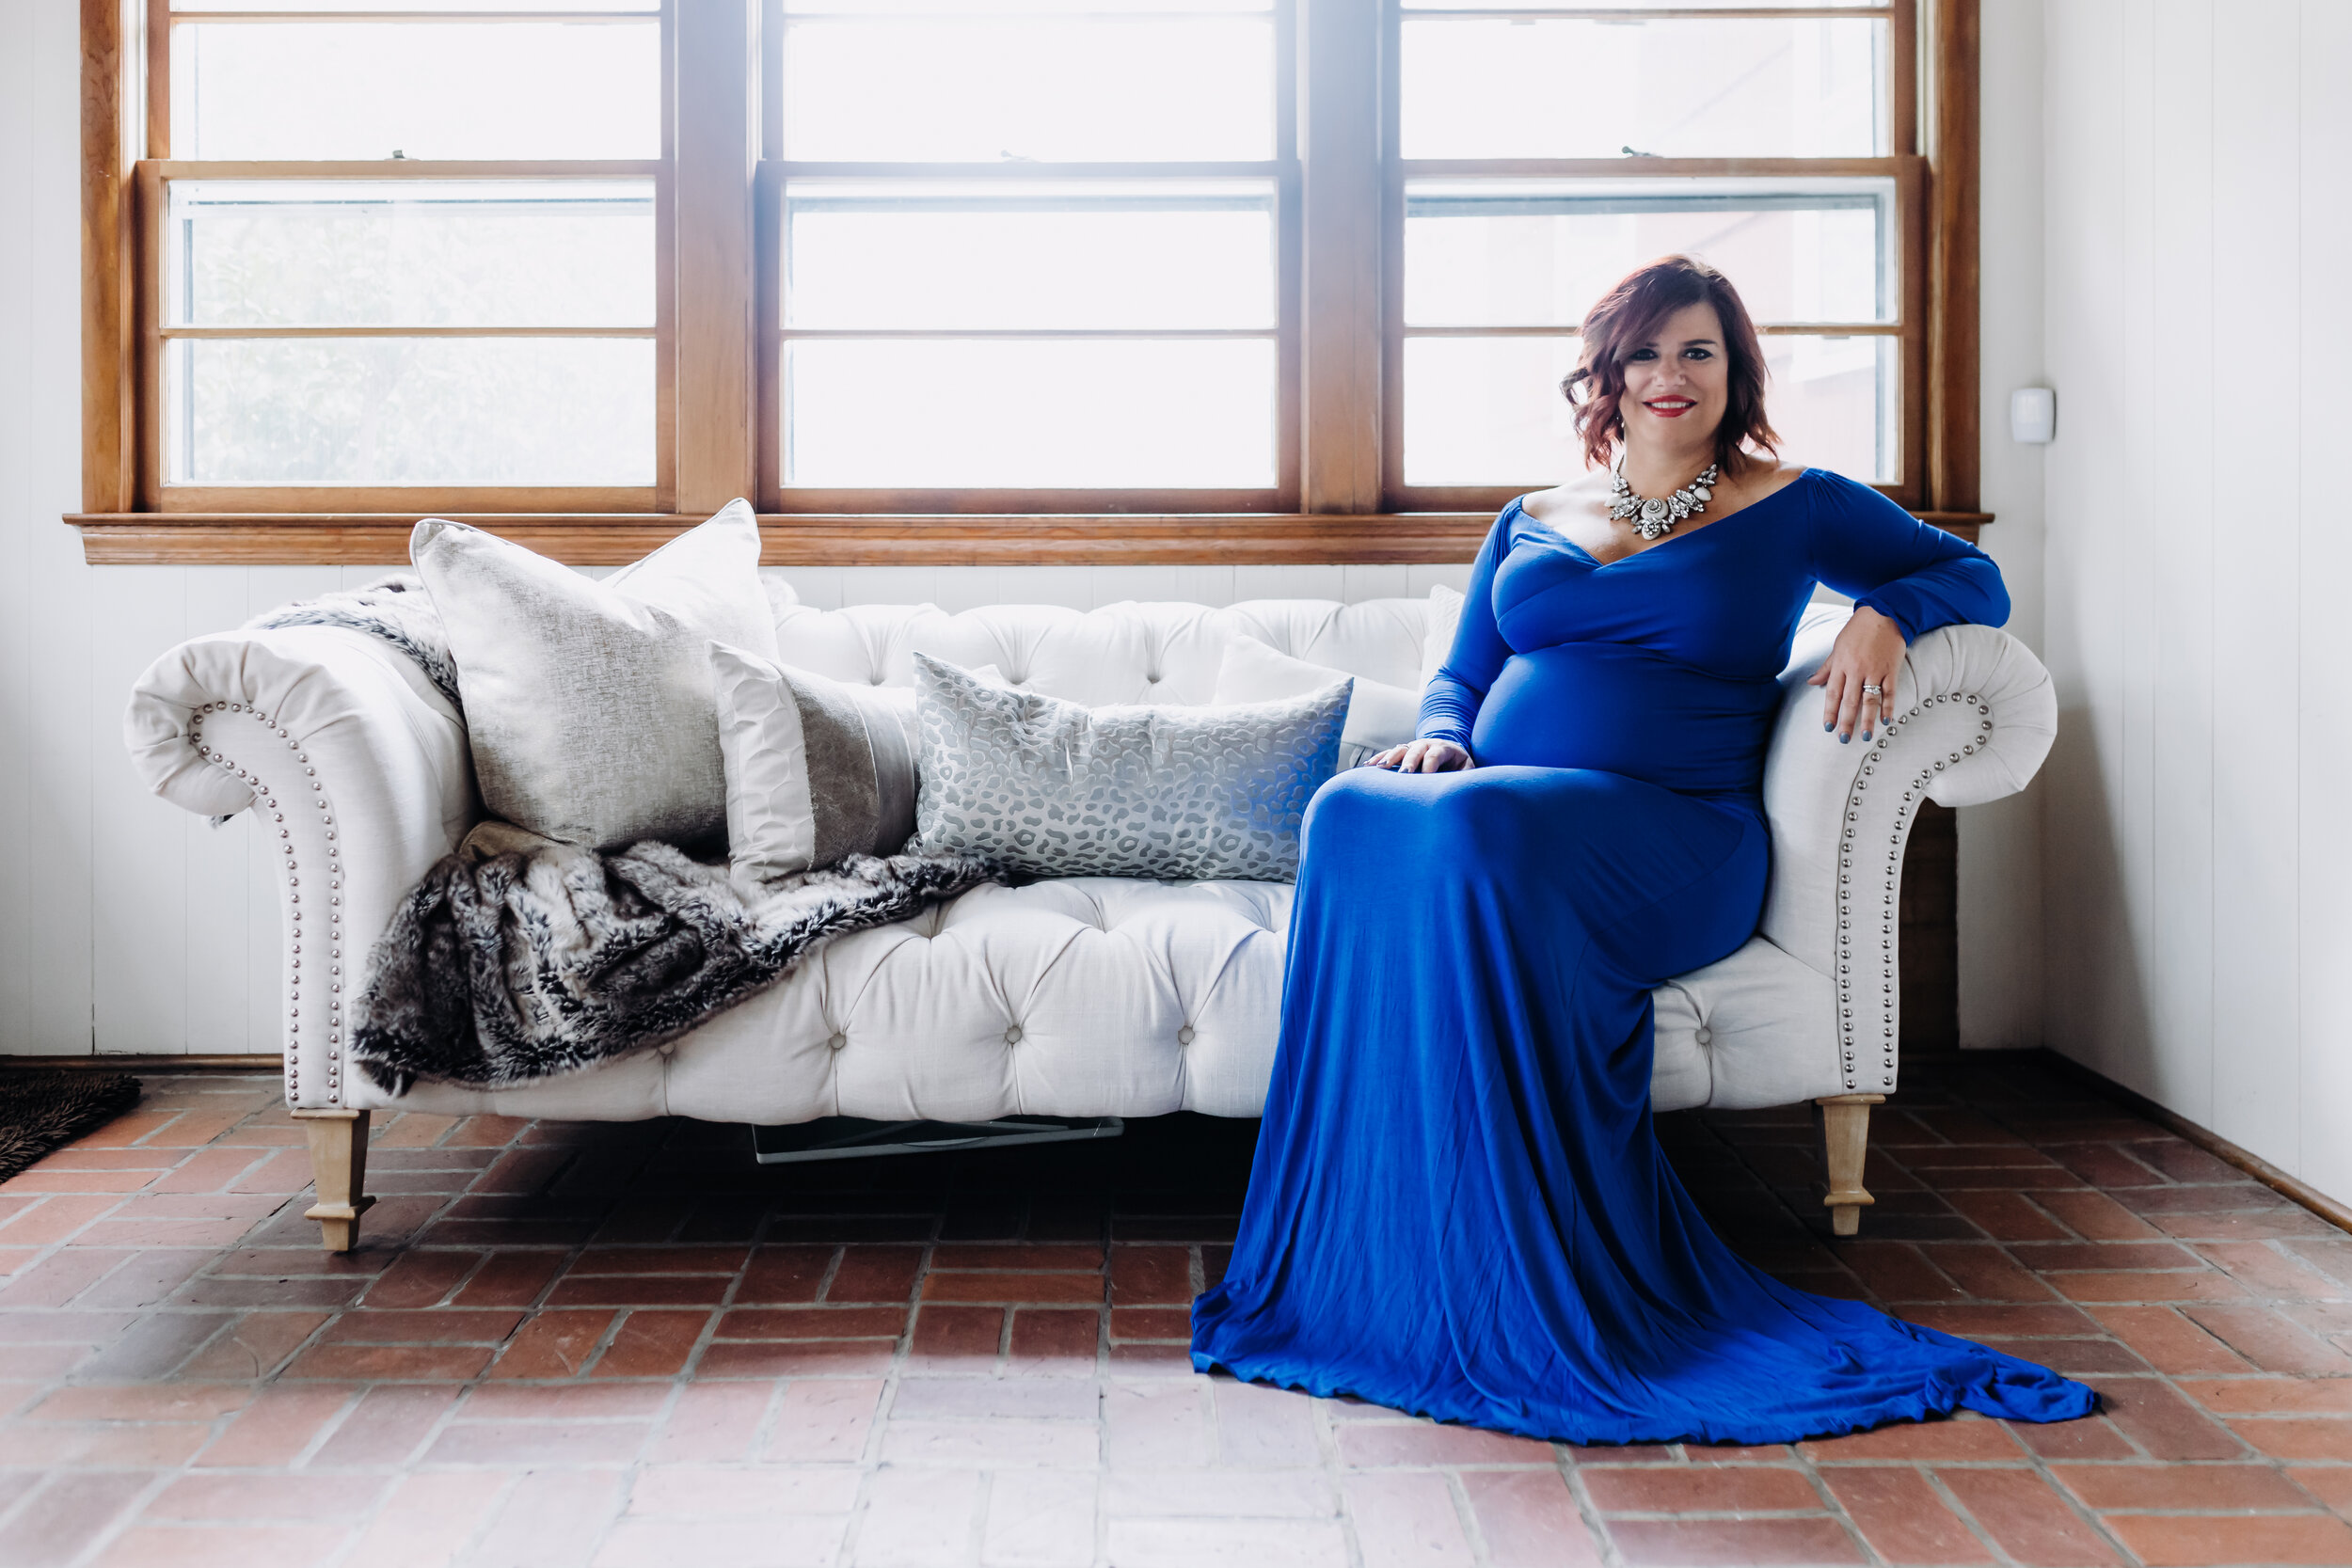 Body Positive Maternity Shoot - Intimate Lifestyle - Raleigh, Durham, Myrtle Beach00020.jpg